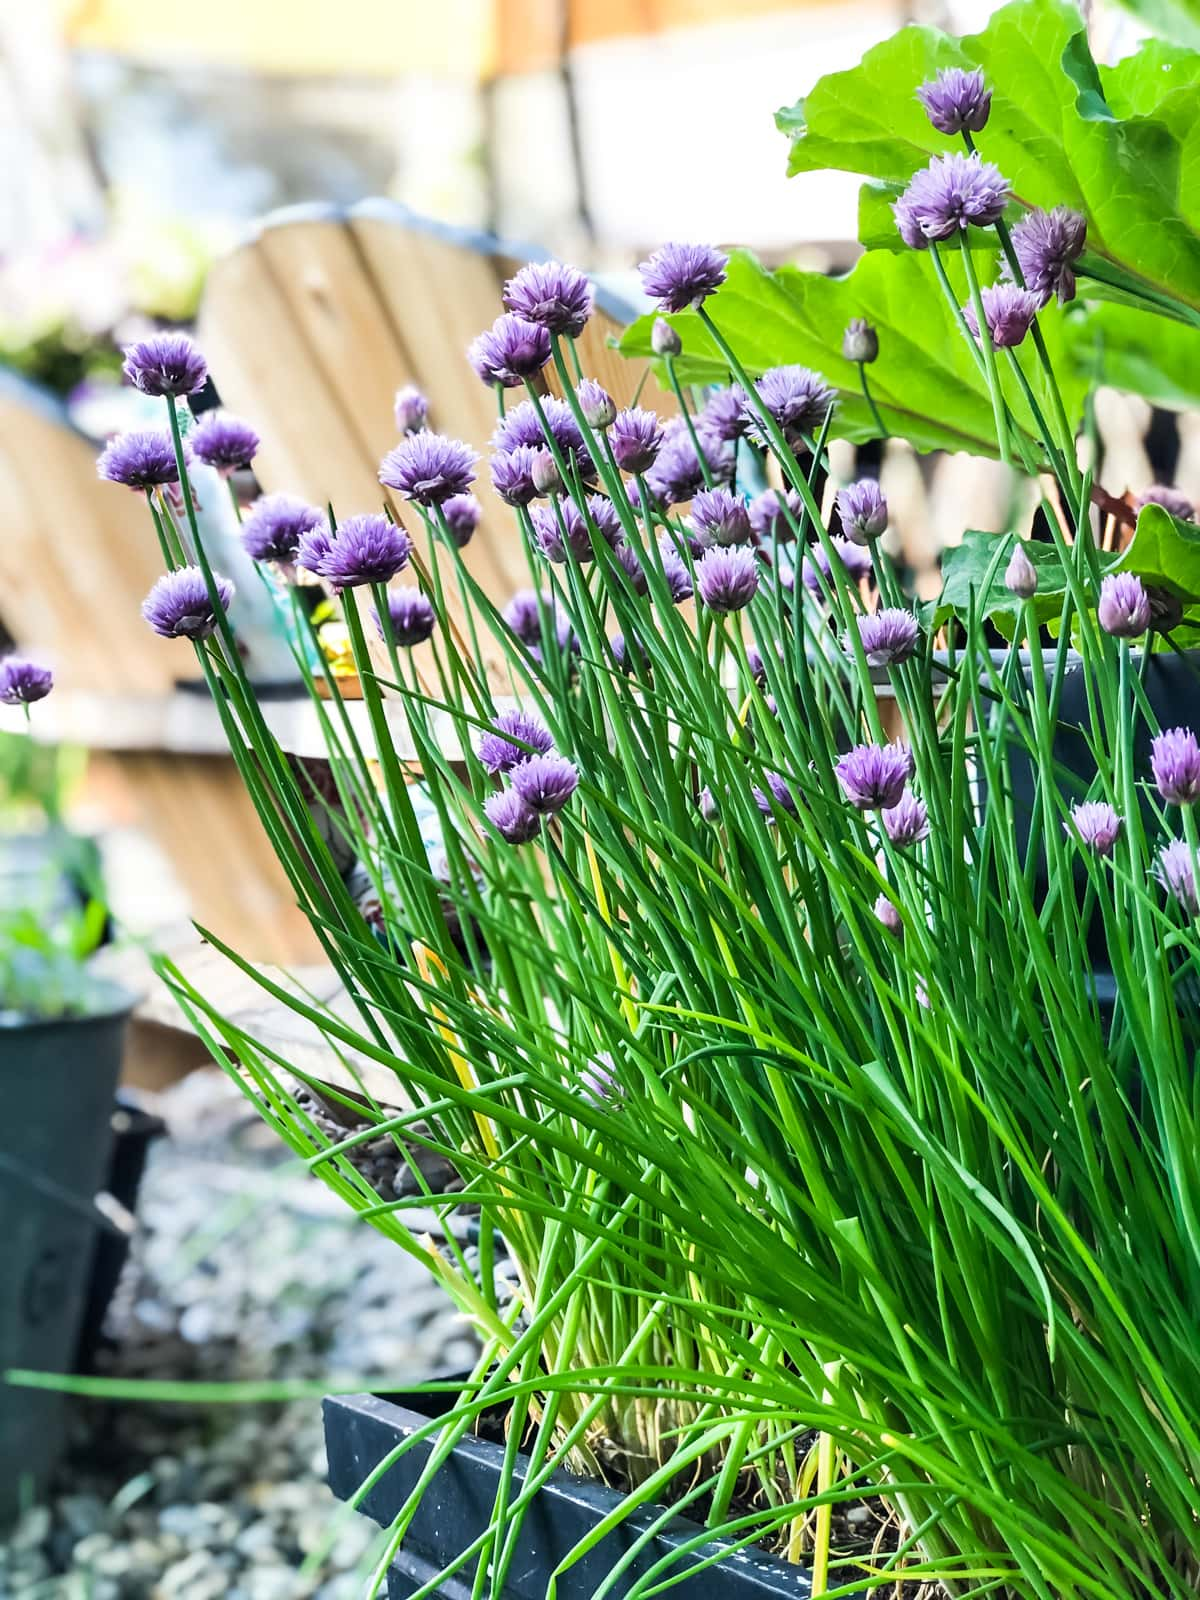 a pot full of chives with purple blossoms